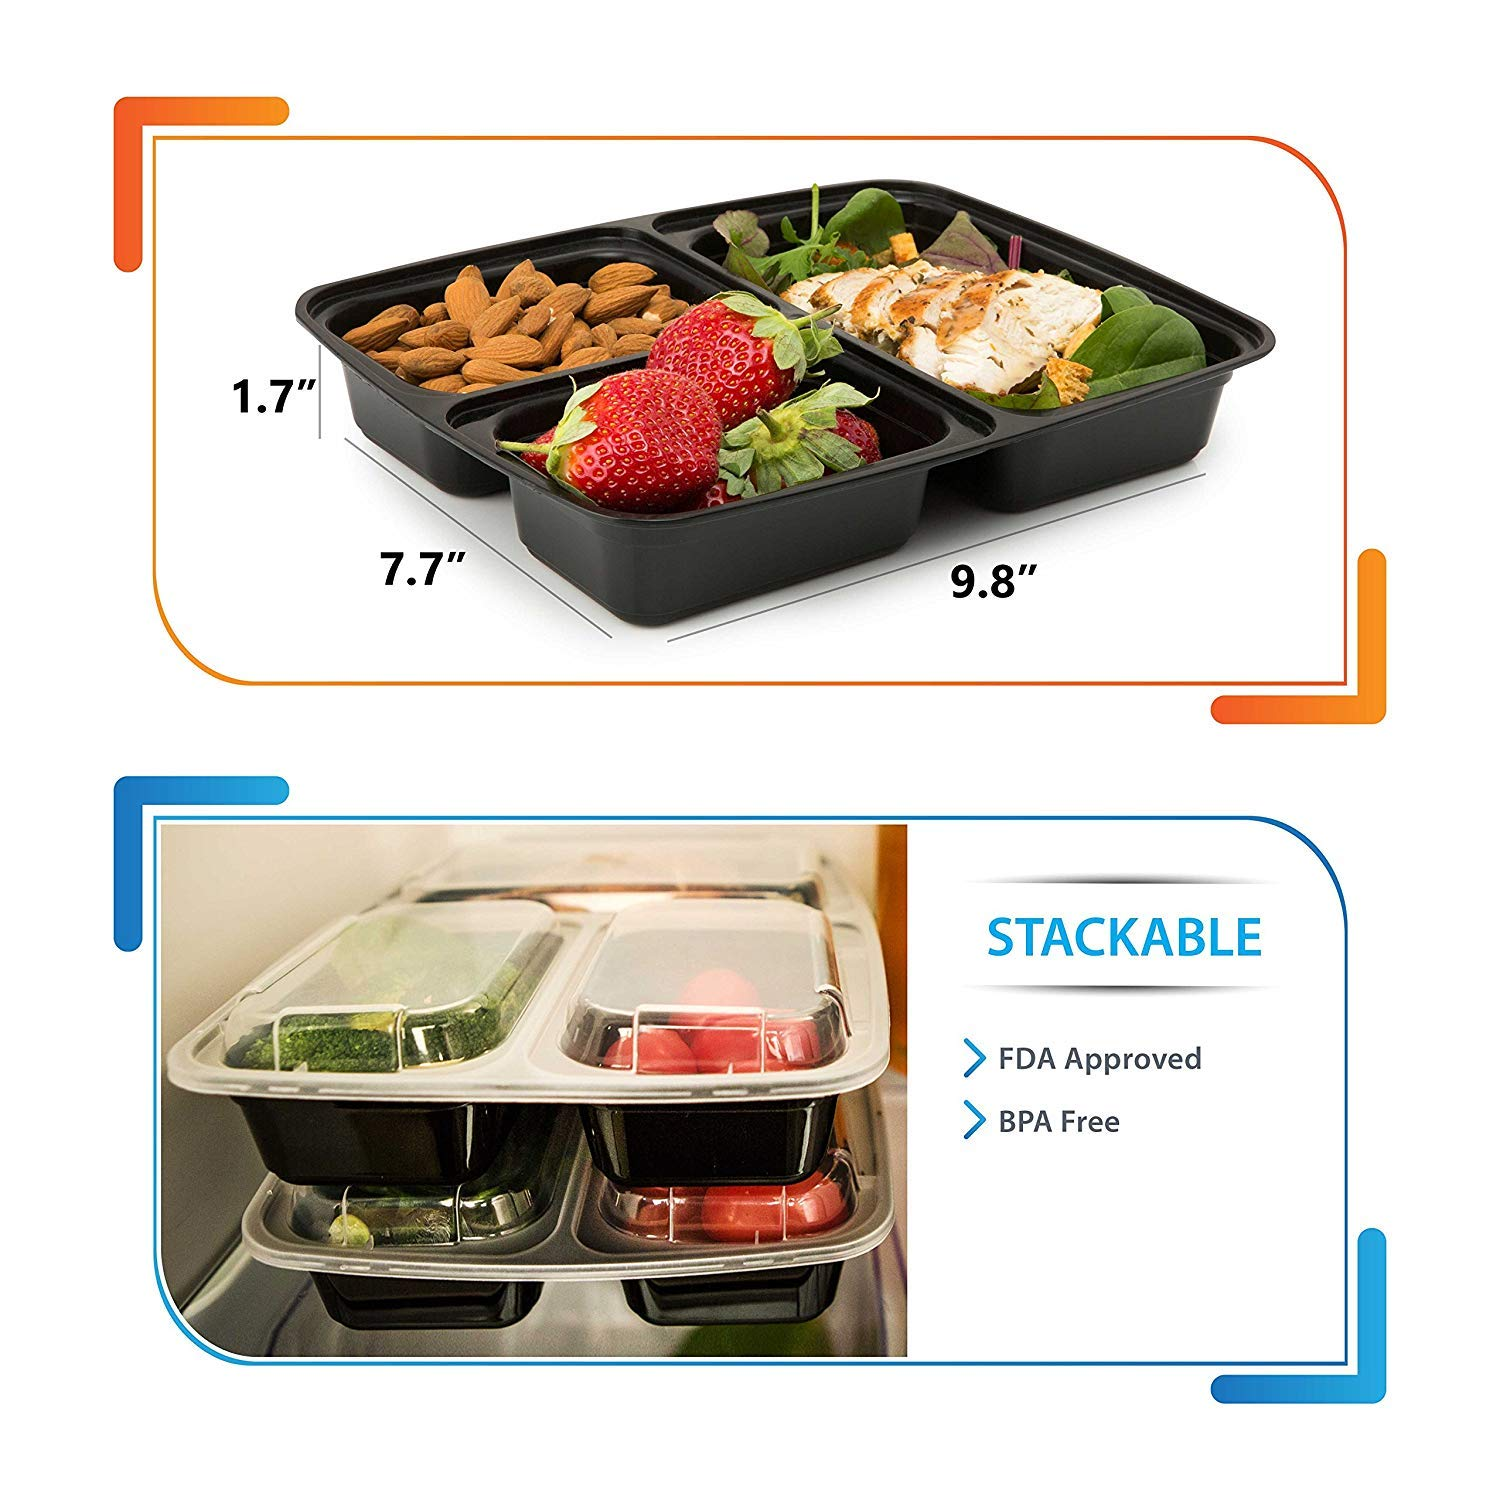 Meal Prep Containers 3 Compartment [15 pack, 32oz] - Bento Box Food Containers BPA Free Bento Boxes For Adults Lunch Containers - Plastic Containers with Lids Food Storage Containers with Lids by Prep Naturals (Image #4)